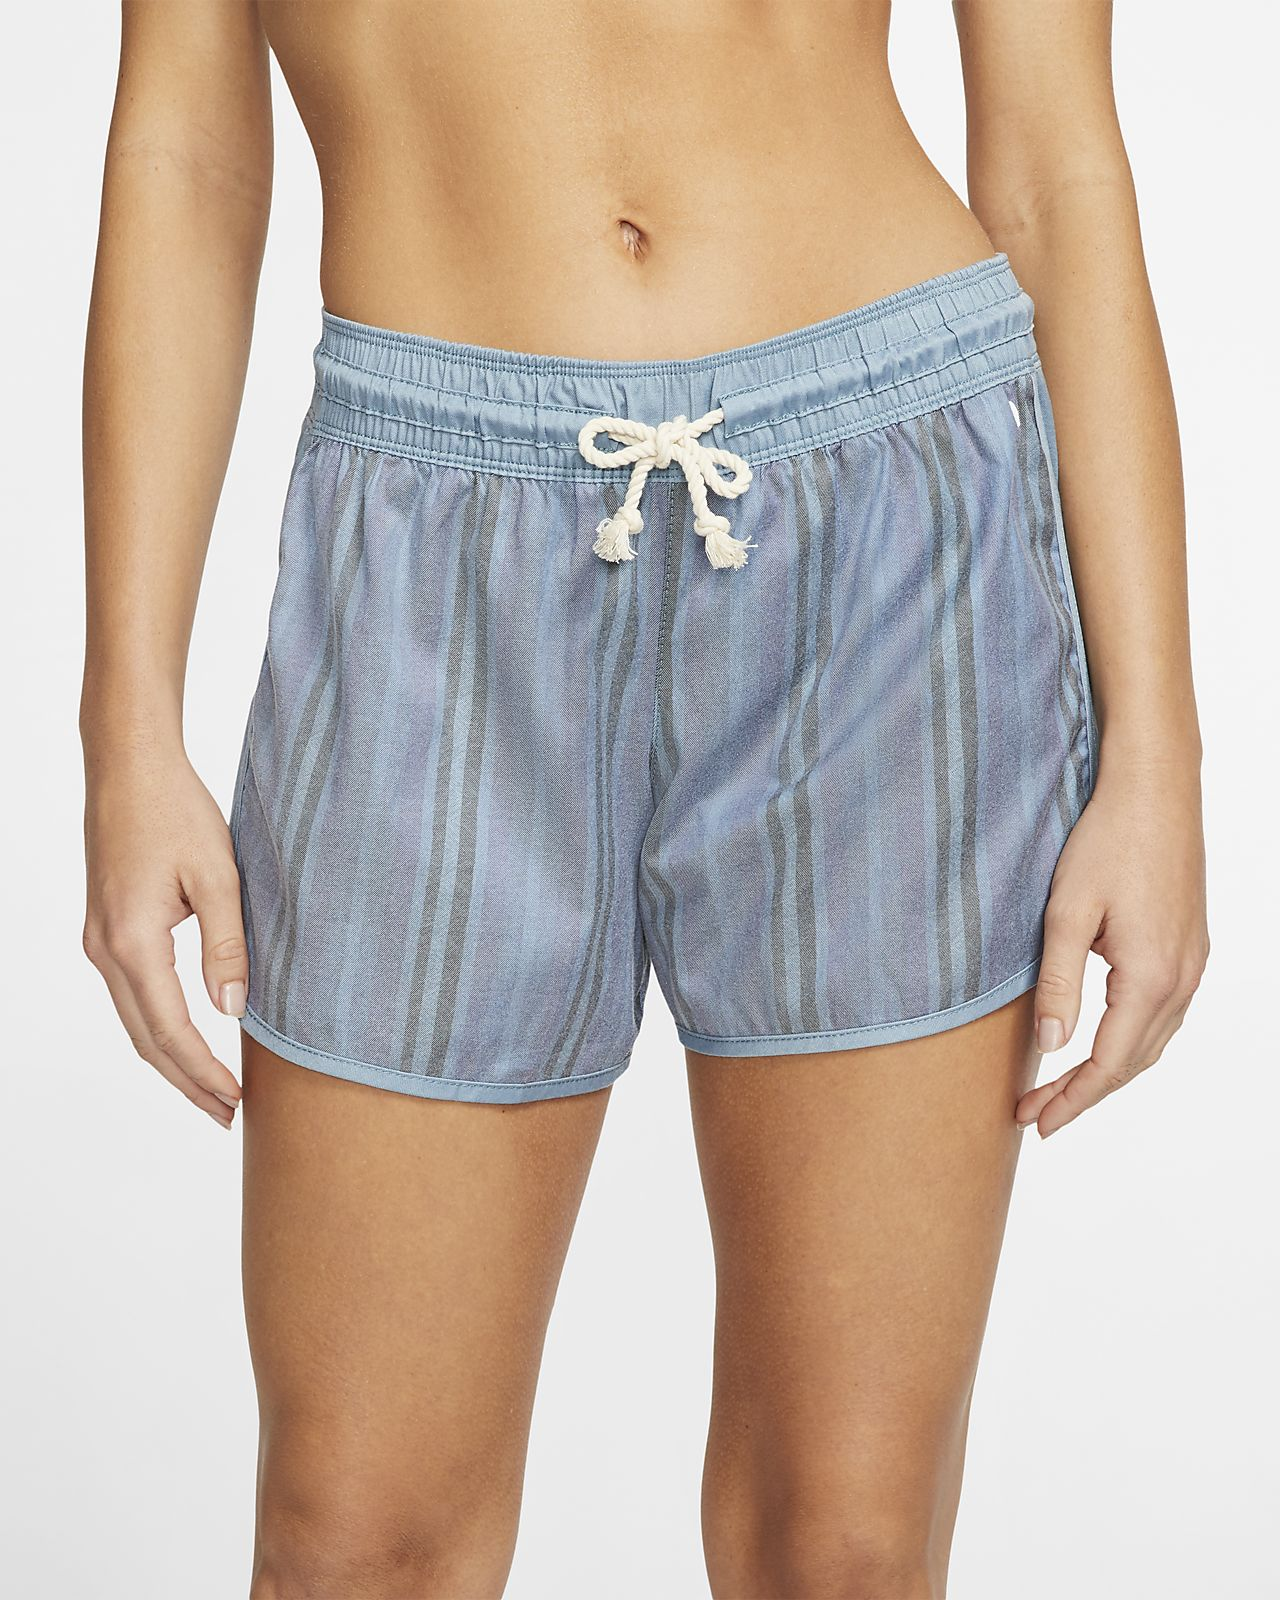 Hurley Herringstripe Women's Boardshorts